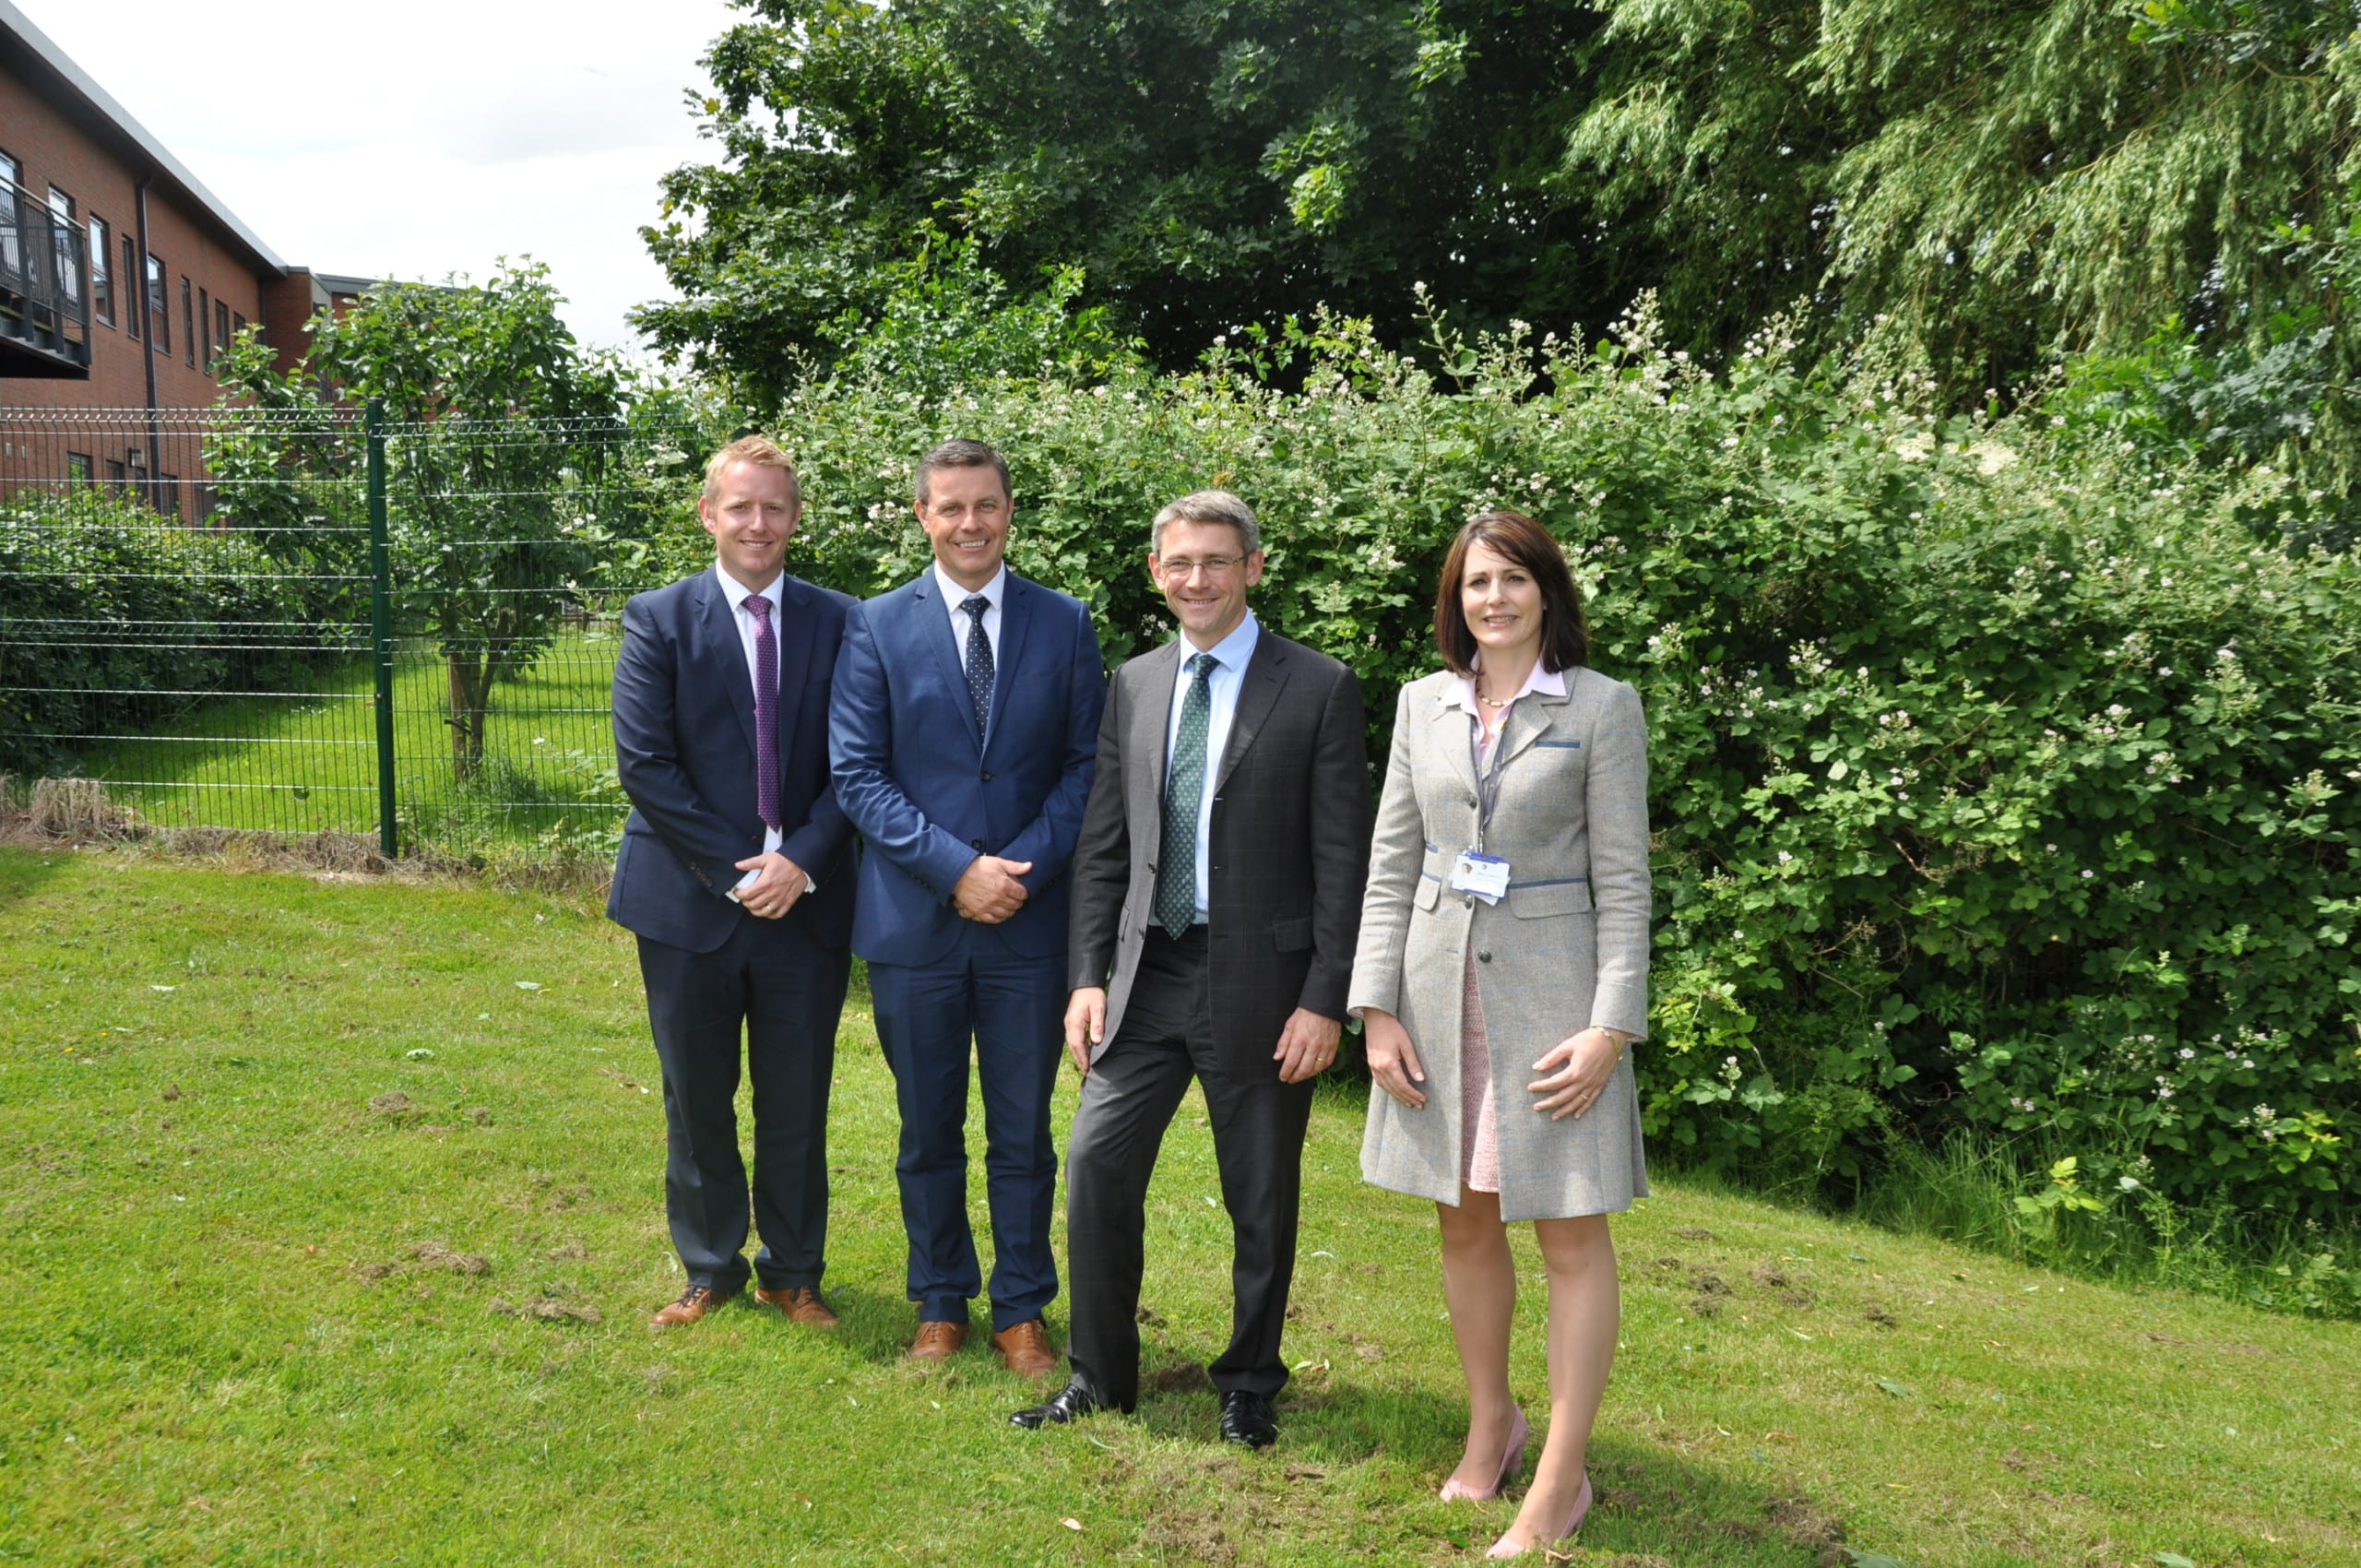 Academy trust receives visit from incoming headmaster of leading independent school Harrow